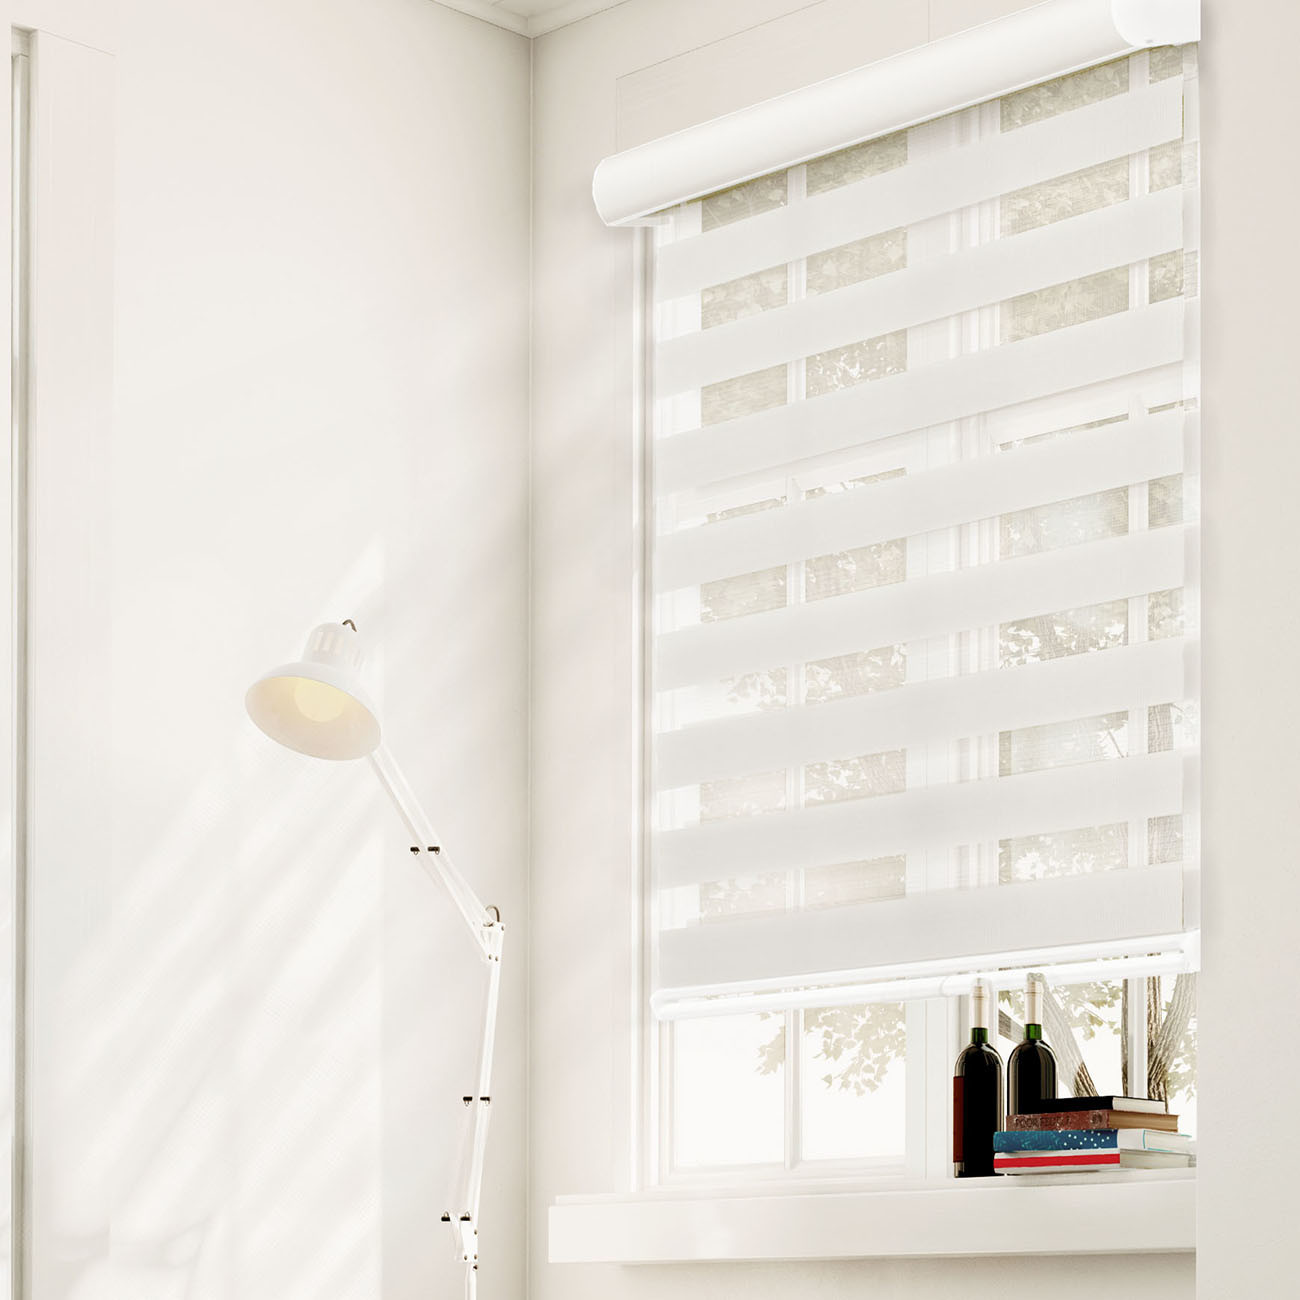 Menards Window Blinds | Menards Window Blinds | Menards Sale Ad